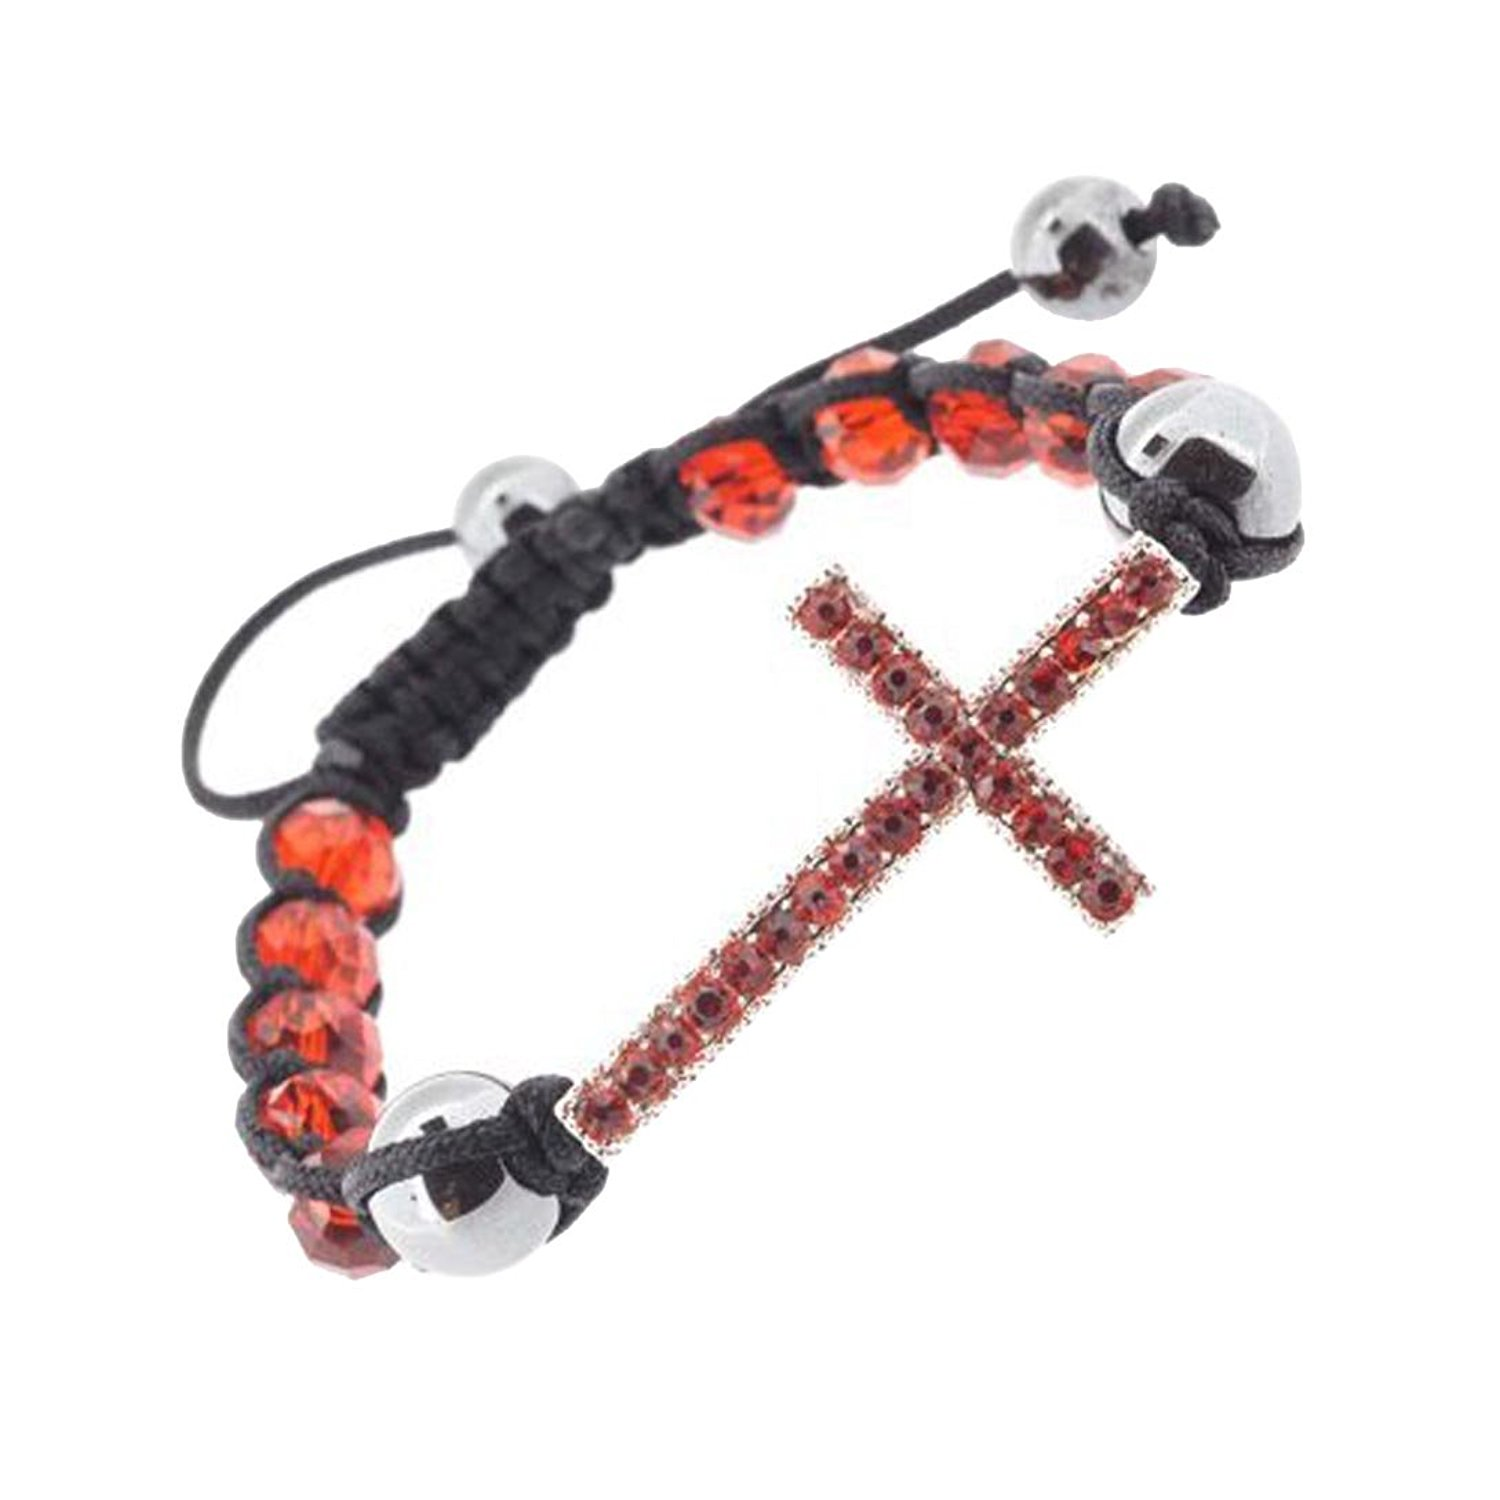 10mm Rhinestone Sideways Cross Bracelet, Red Faceted Honesty Bracelet